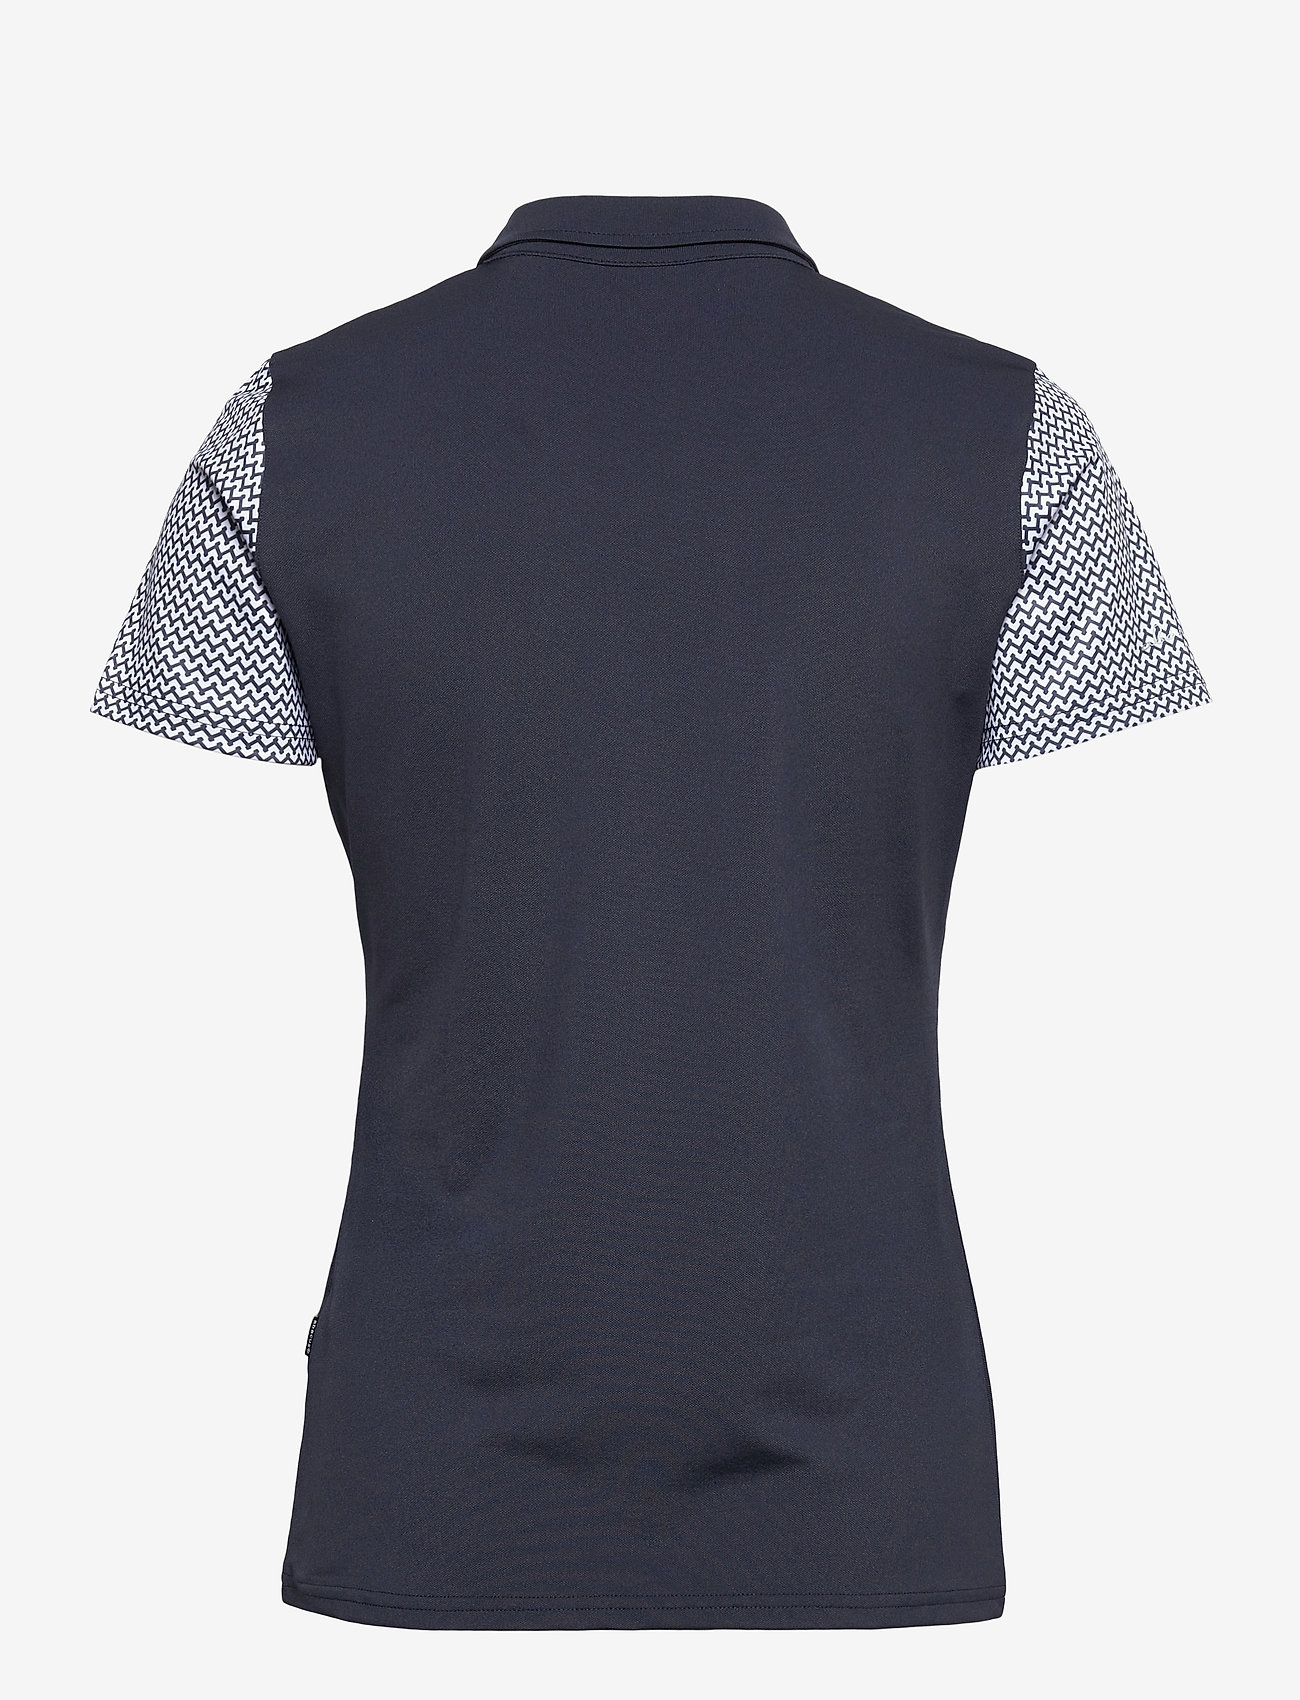 Abacus - Lds Anne polo - polos - navy/white - 1